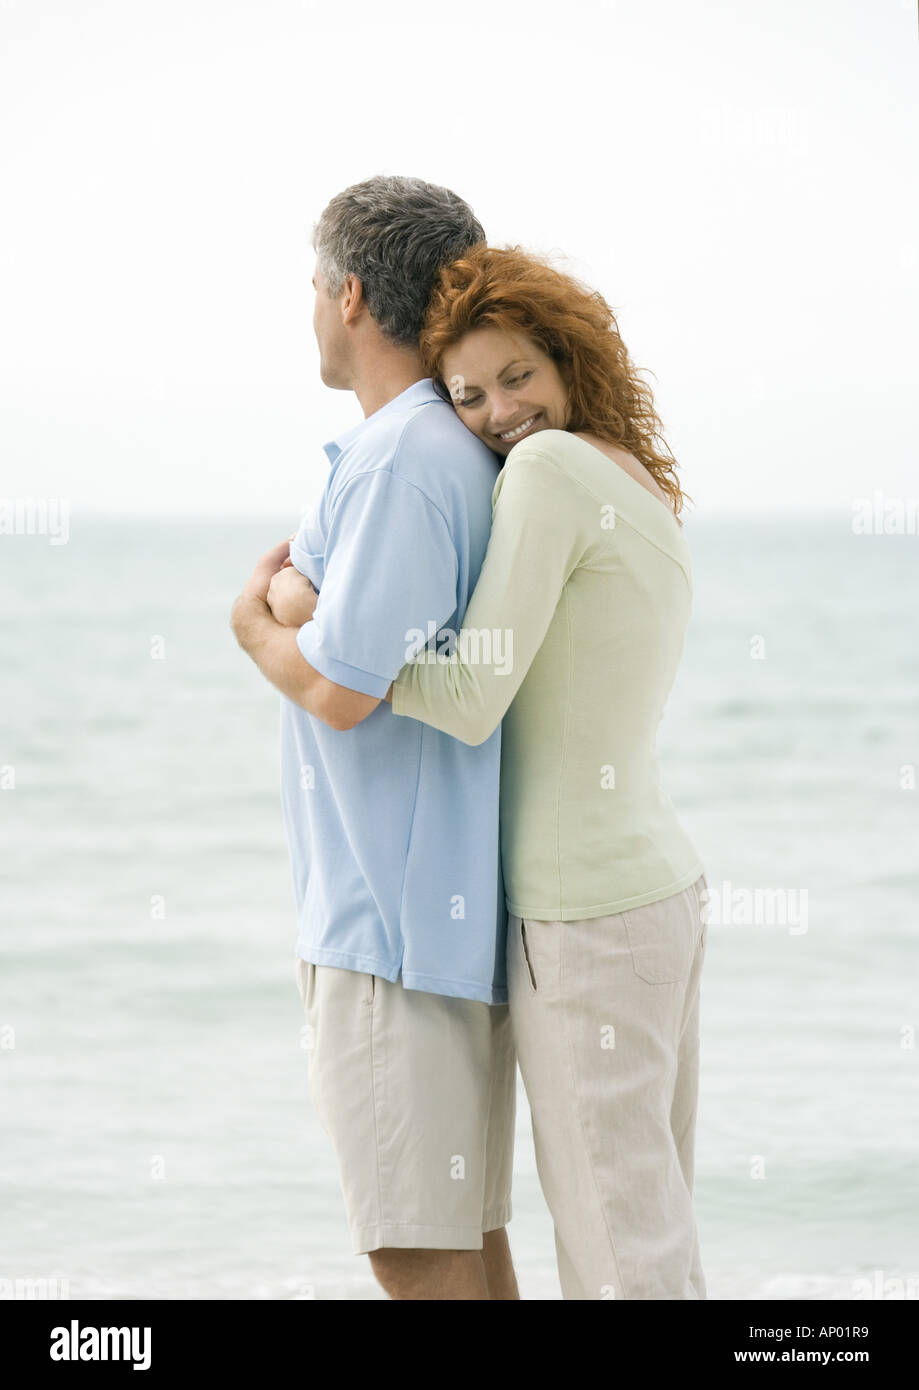 Mature couple, woman hugging man from behind - Stock Image